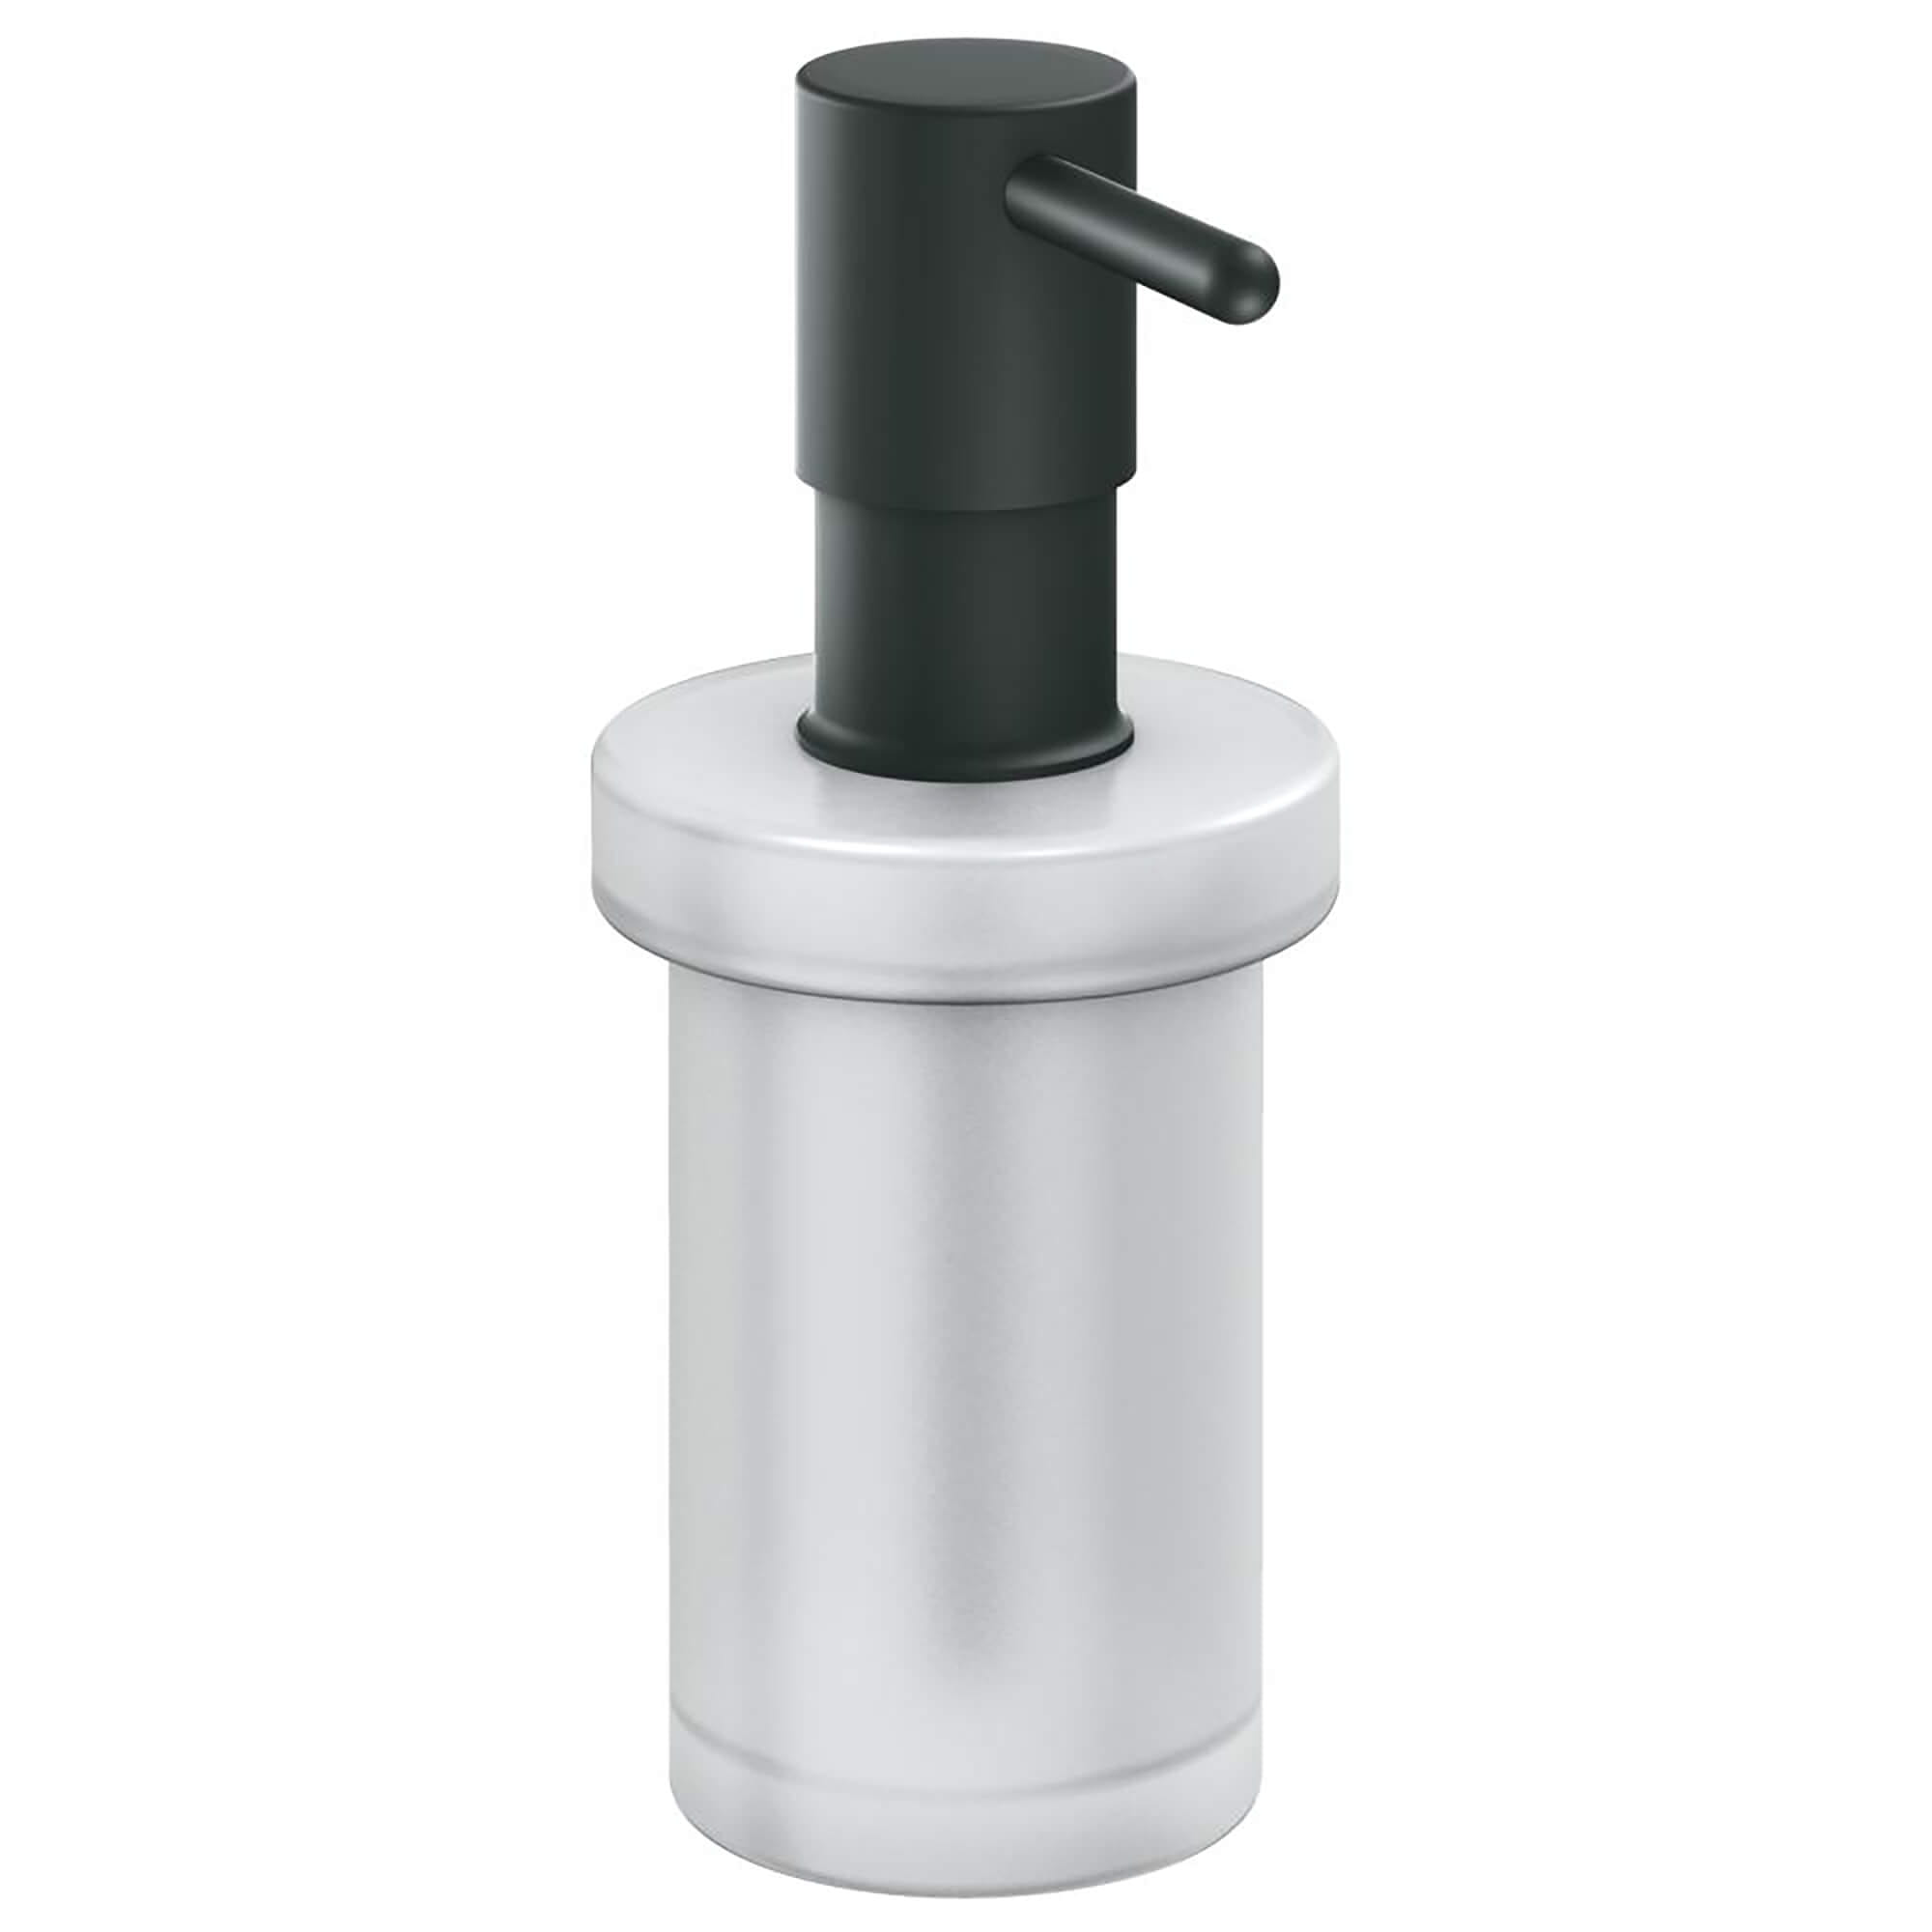 Soap Dispenser Without Holder GROHE VELVET BLACK